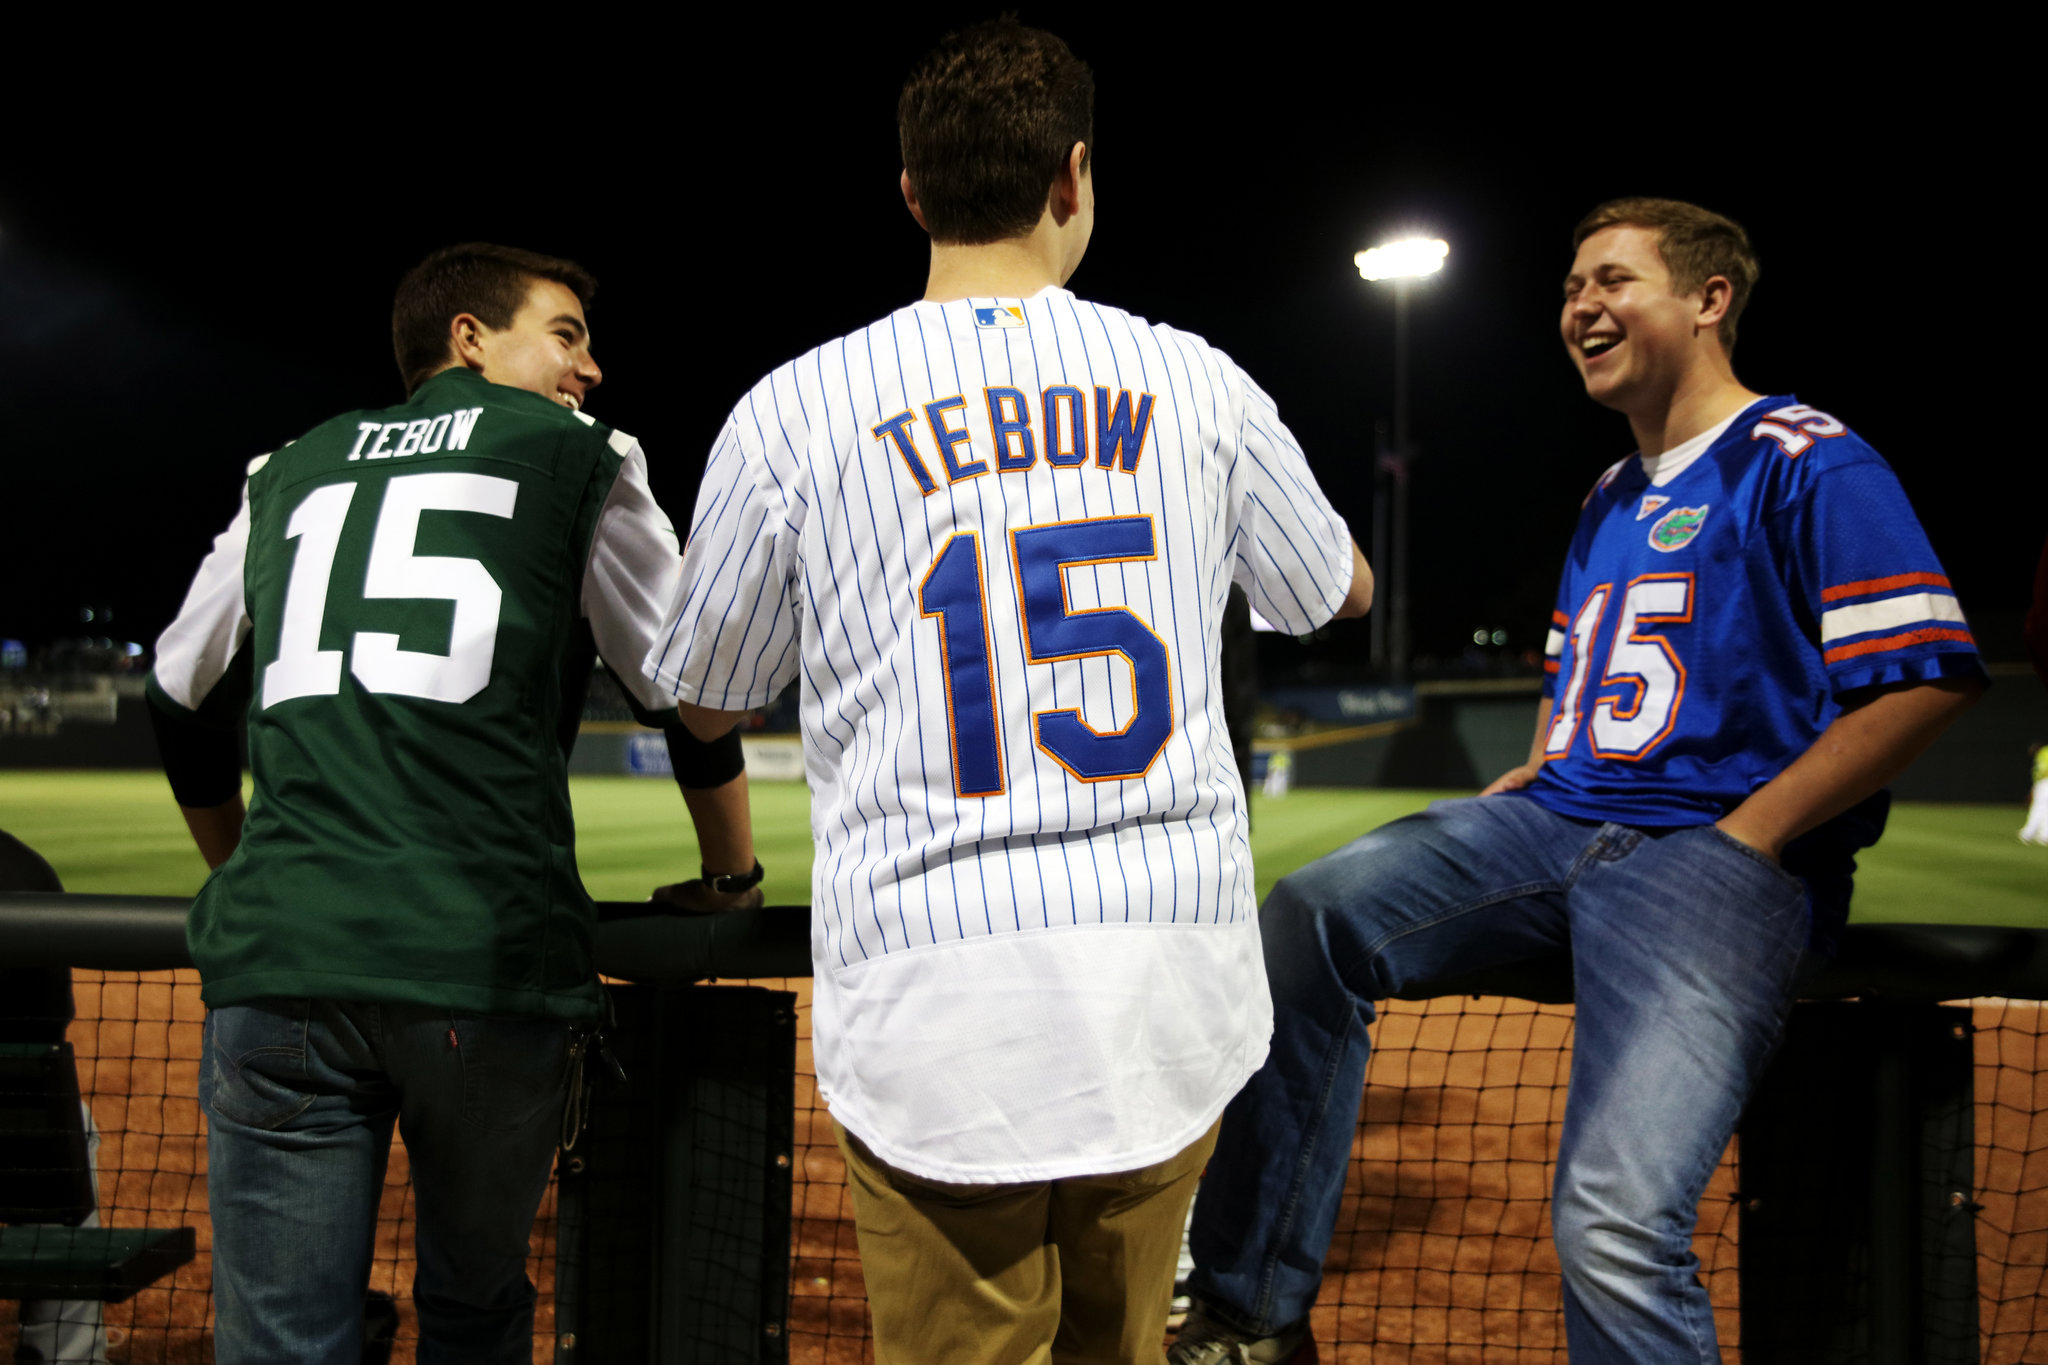 10TEBOW3-superJumbo.jpg